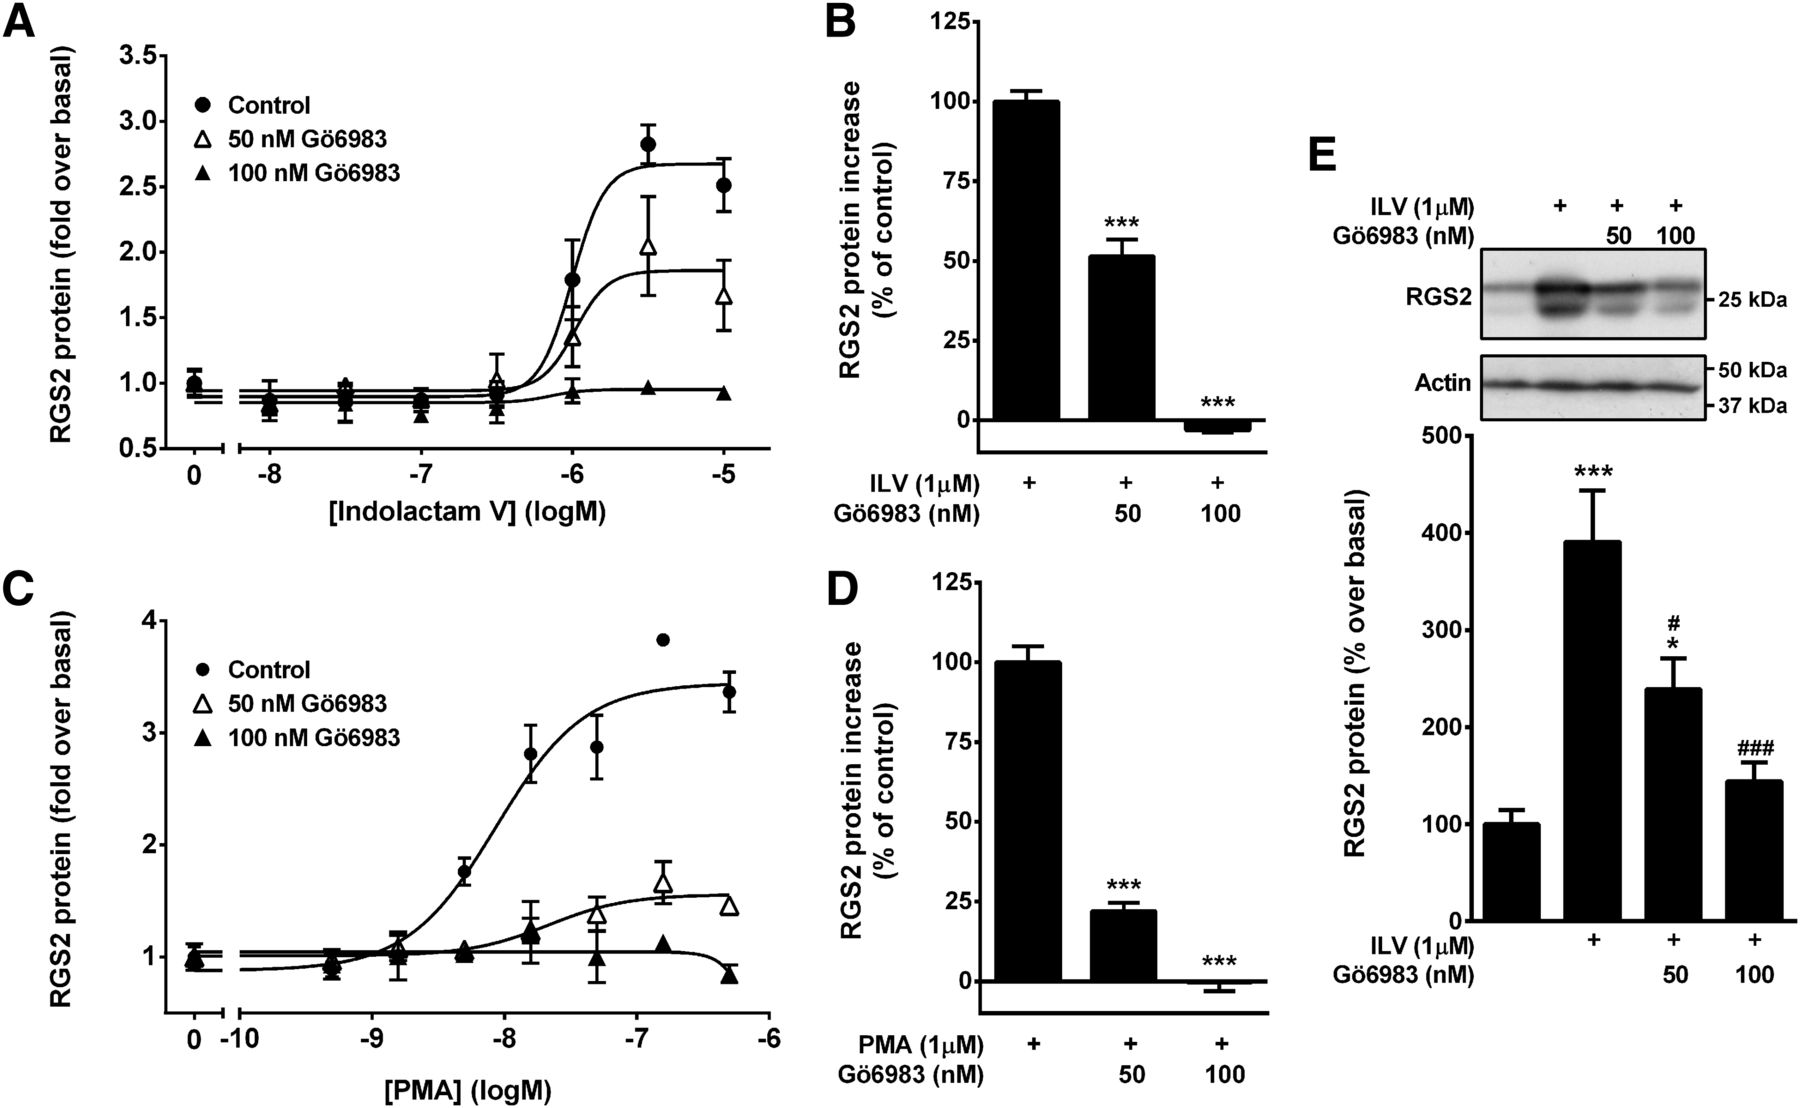 Identification of Protein Kinase C Activation as a Novel